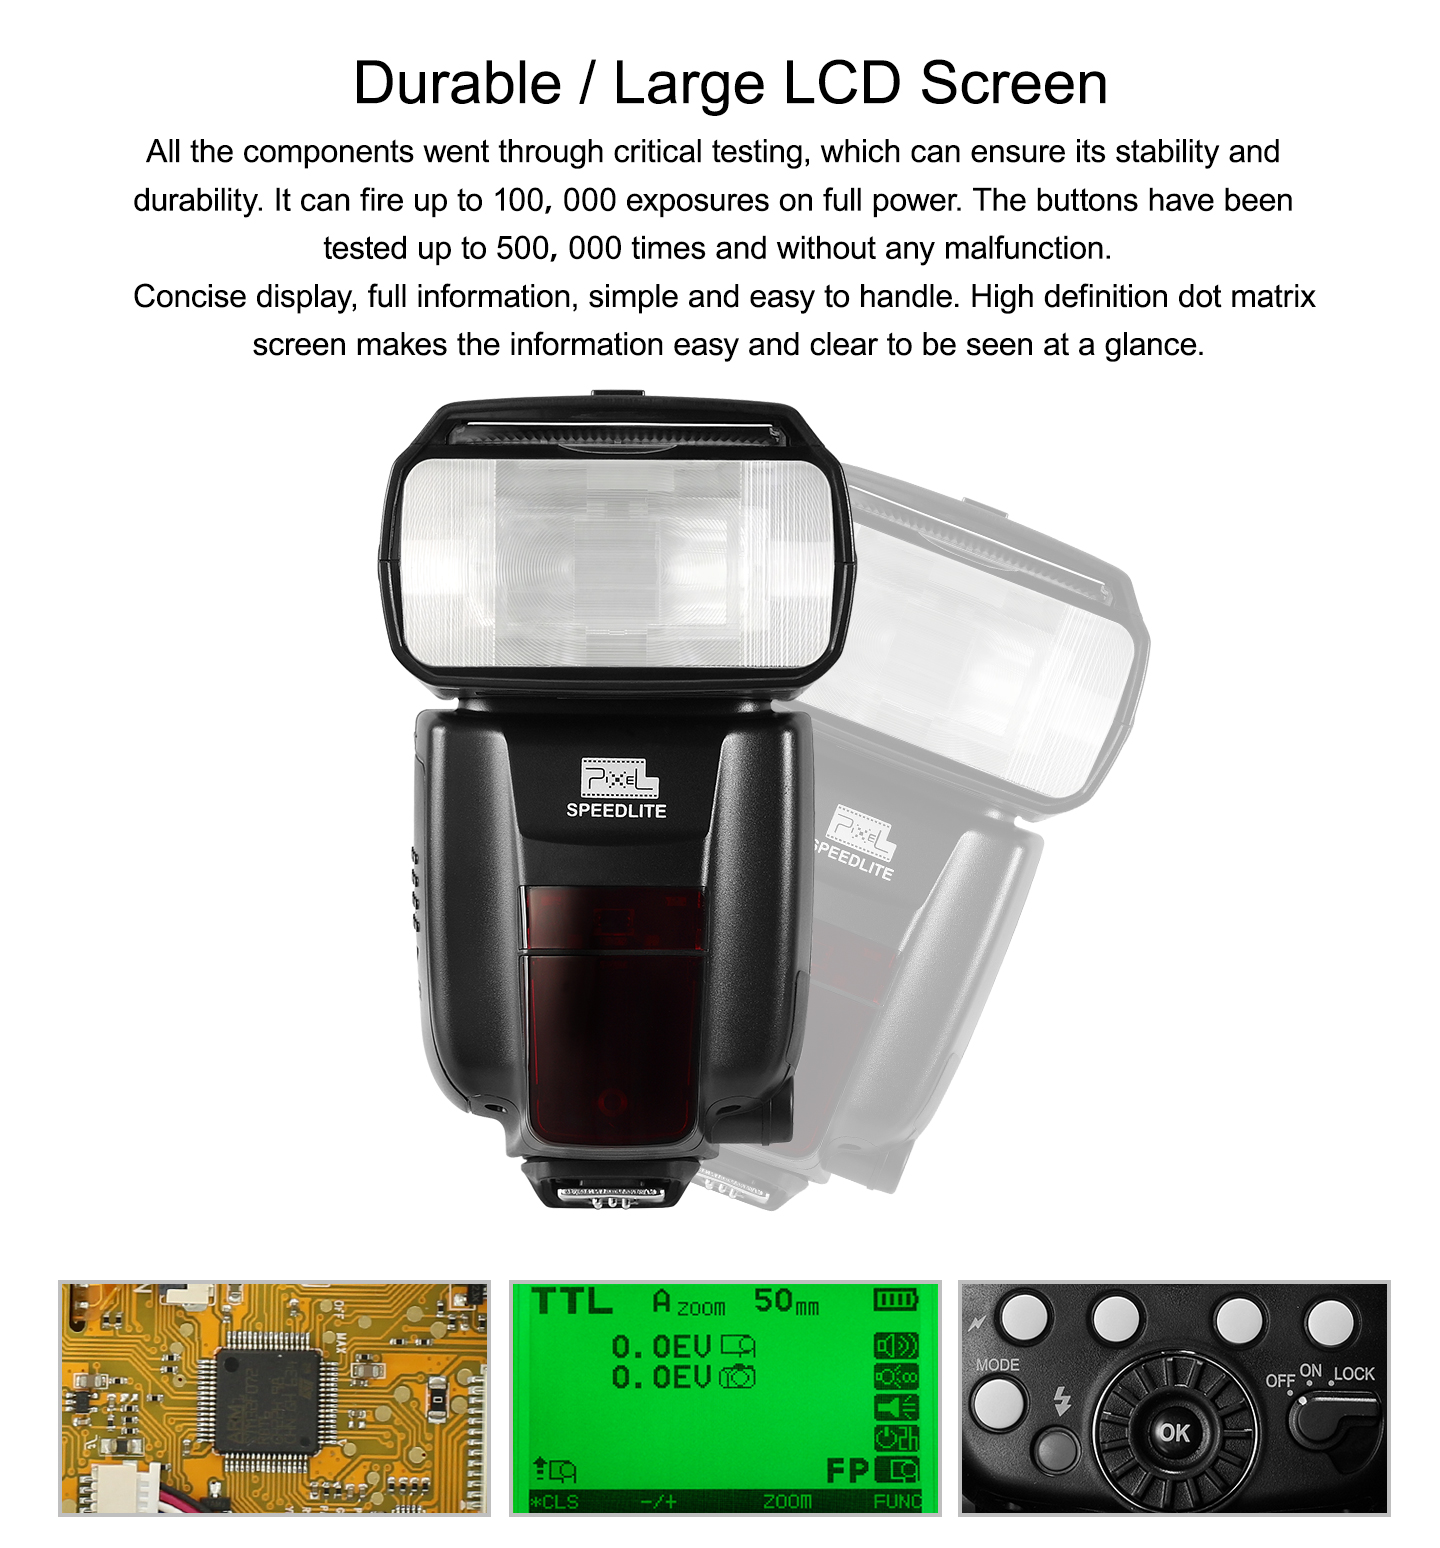 Durable/Large LCD Screen